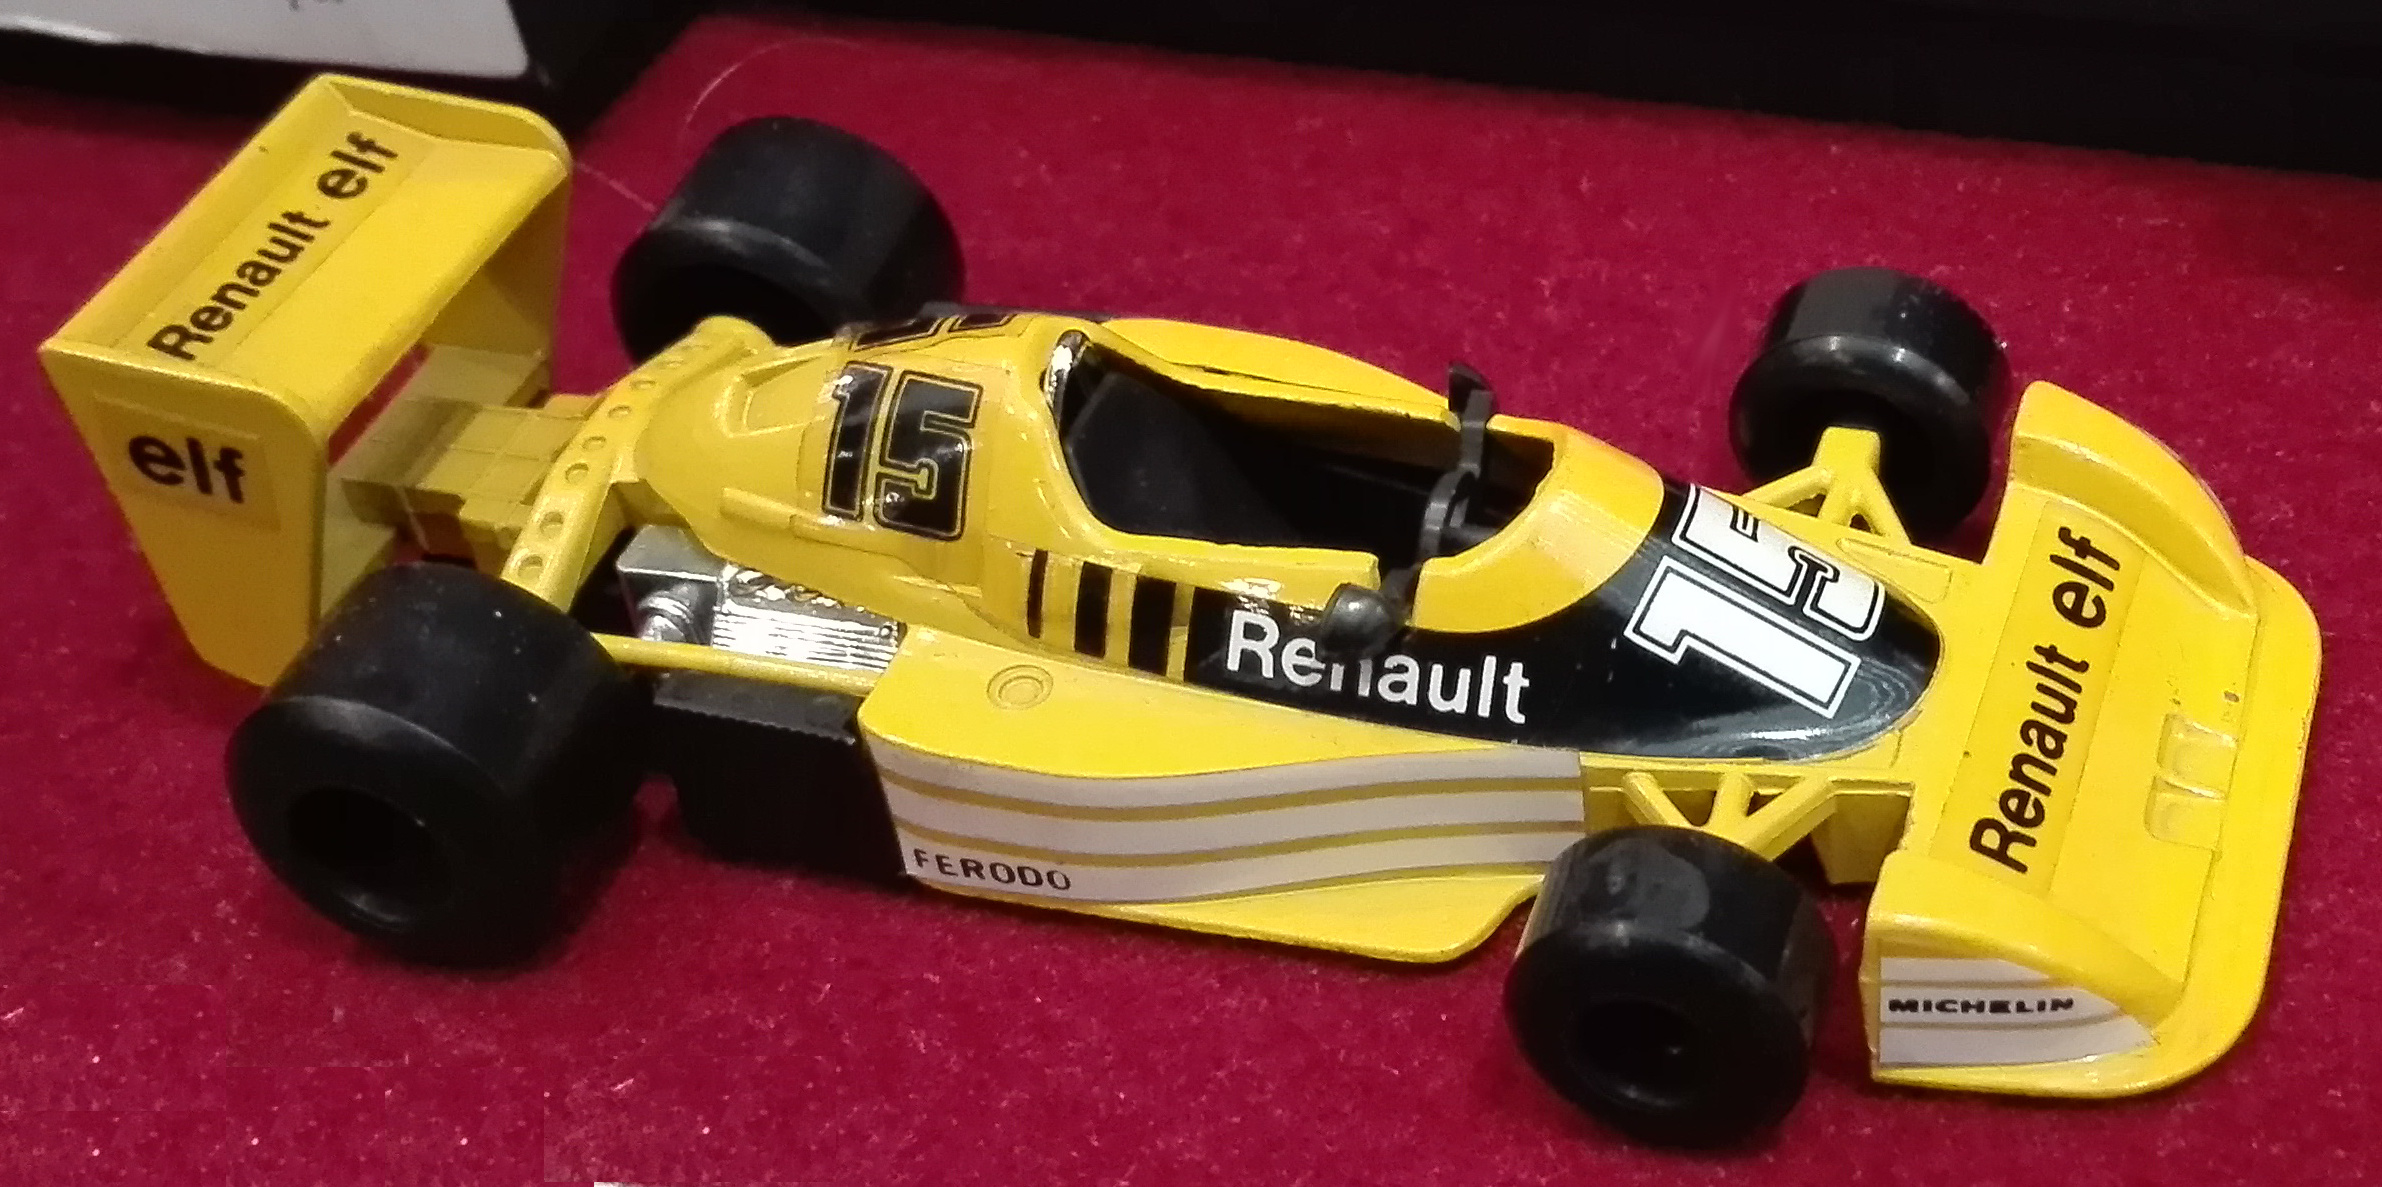 CE105, Renault F1 RS 01 N°15 Jean-Pierre Jabouille (1977) (cc-by-sa my photo)